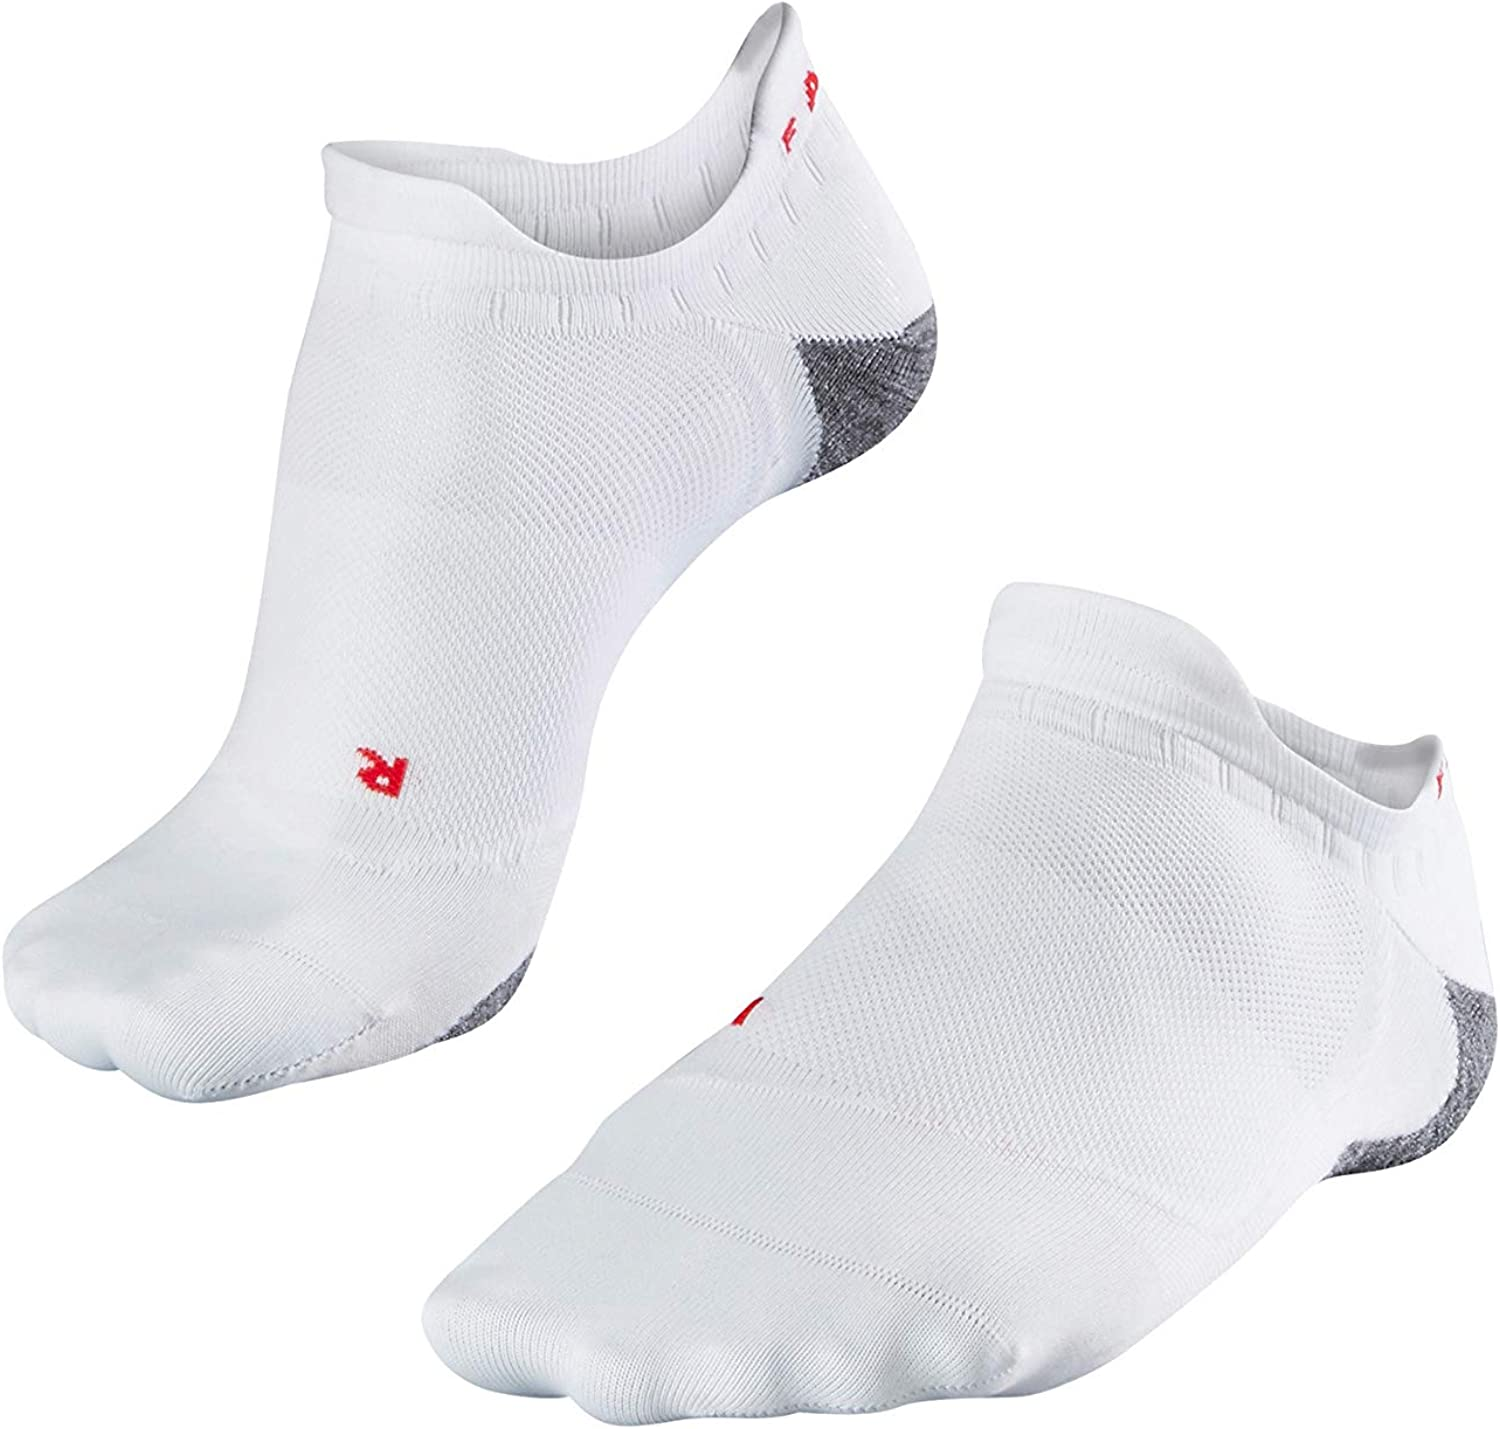 Anti Blister Cushioned No Show US sizes 6.5 to 10.5 In Black or White 1 Pair FALKE Womens RU5 Invisible Running Socks